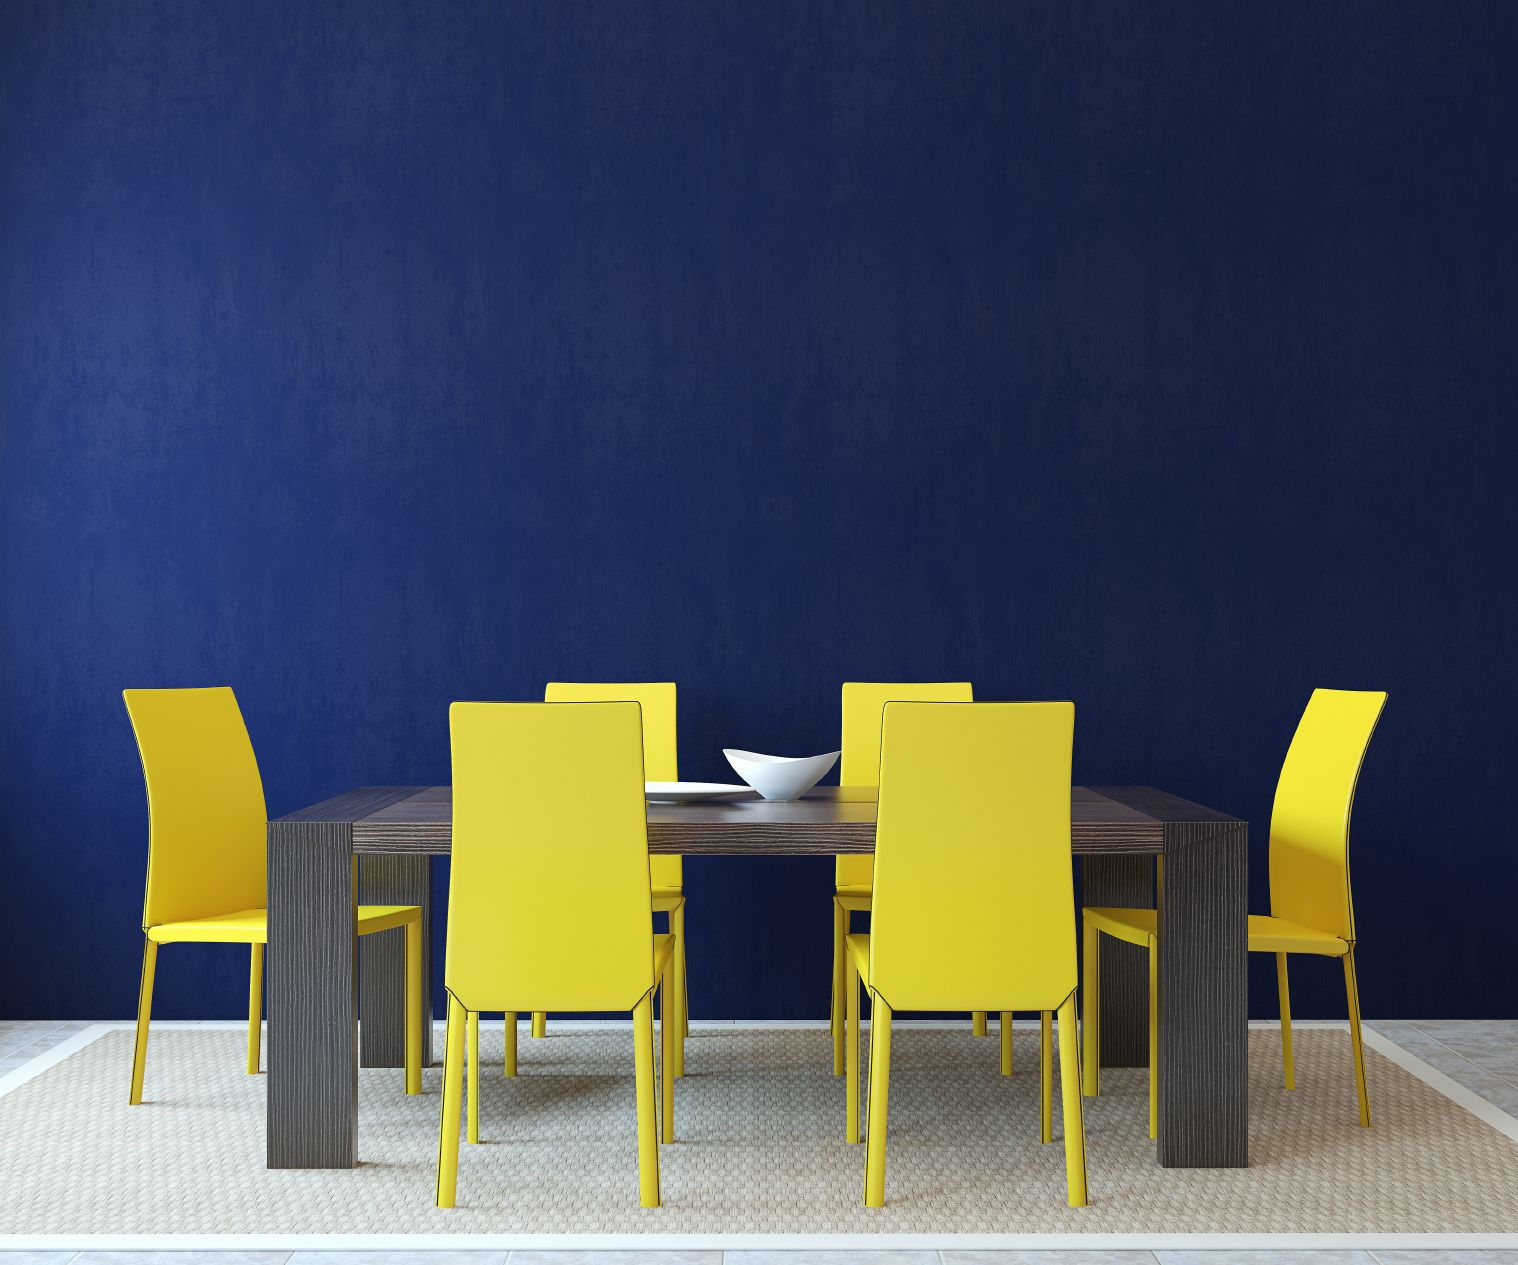 Navy yellow bedrooms house paint interior and yellow kitchen walls - Beautiful Blue Navy Interiors For Spring Yellow Dining Chairs